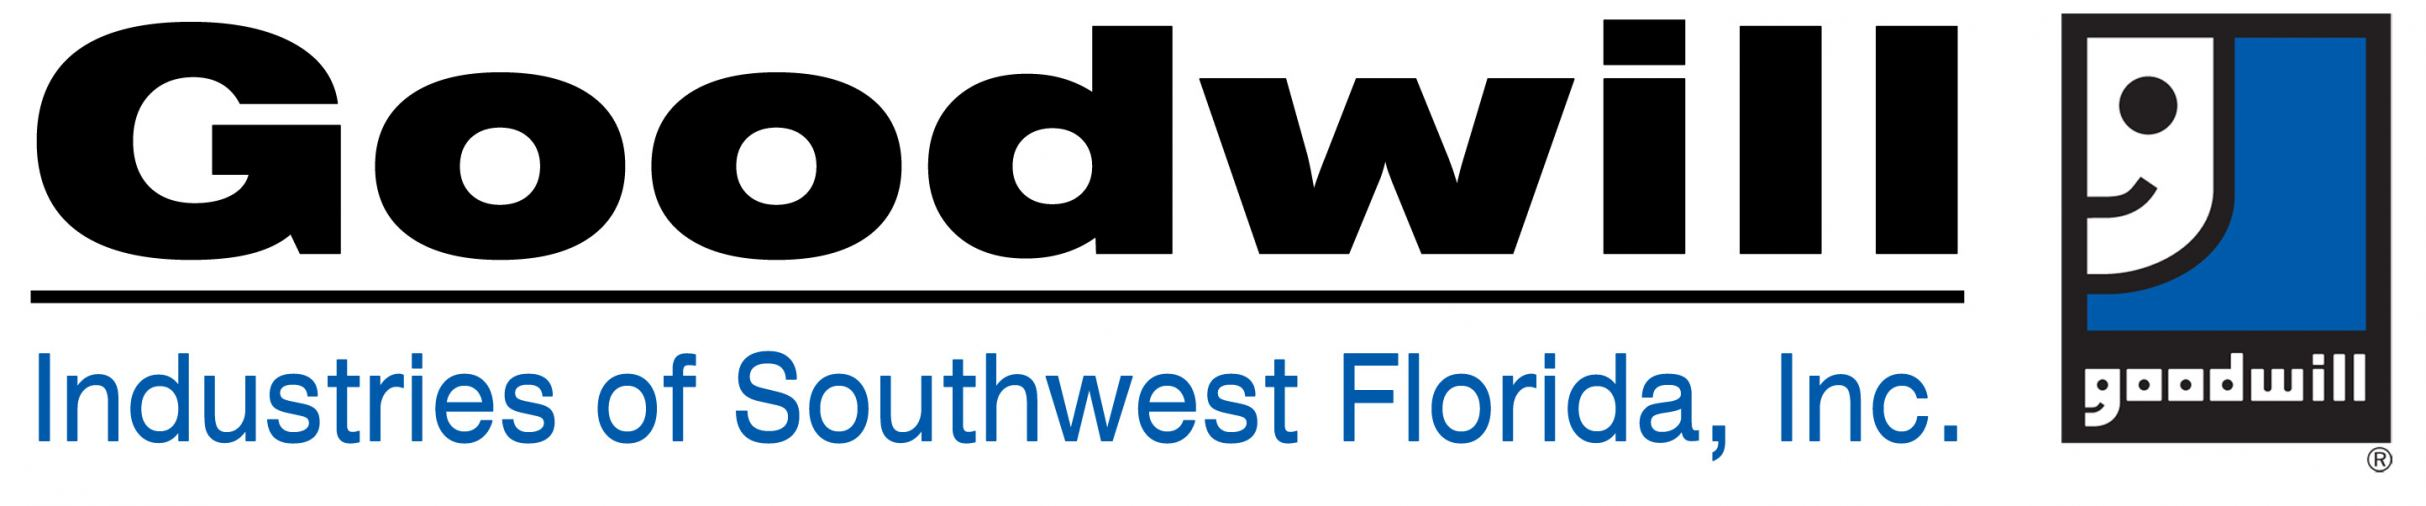 Goodwill Industries of Southwest Florida, Inc. Logo